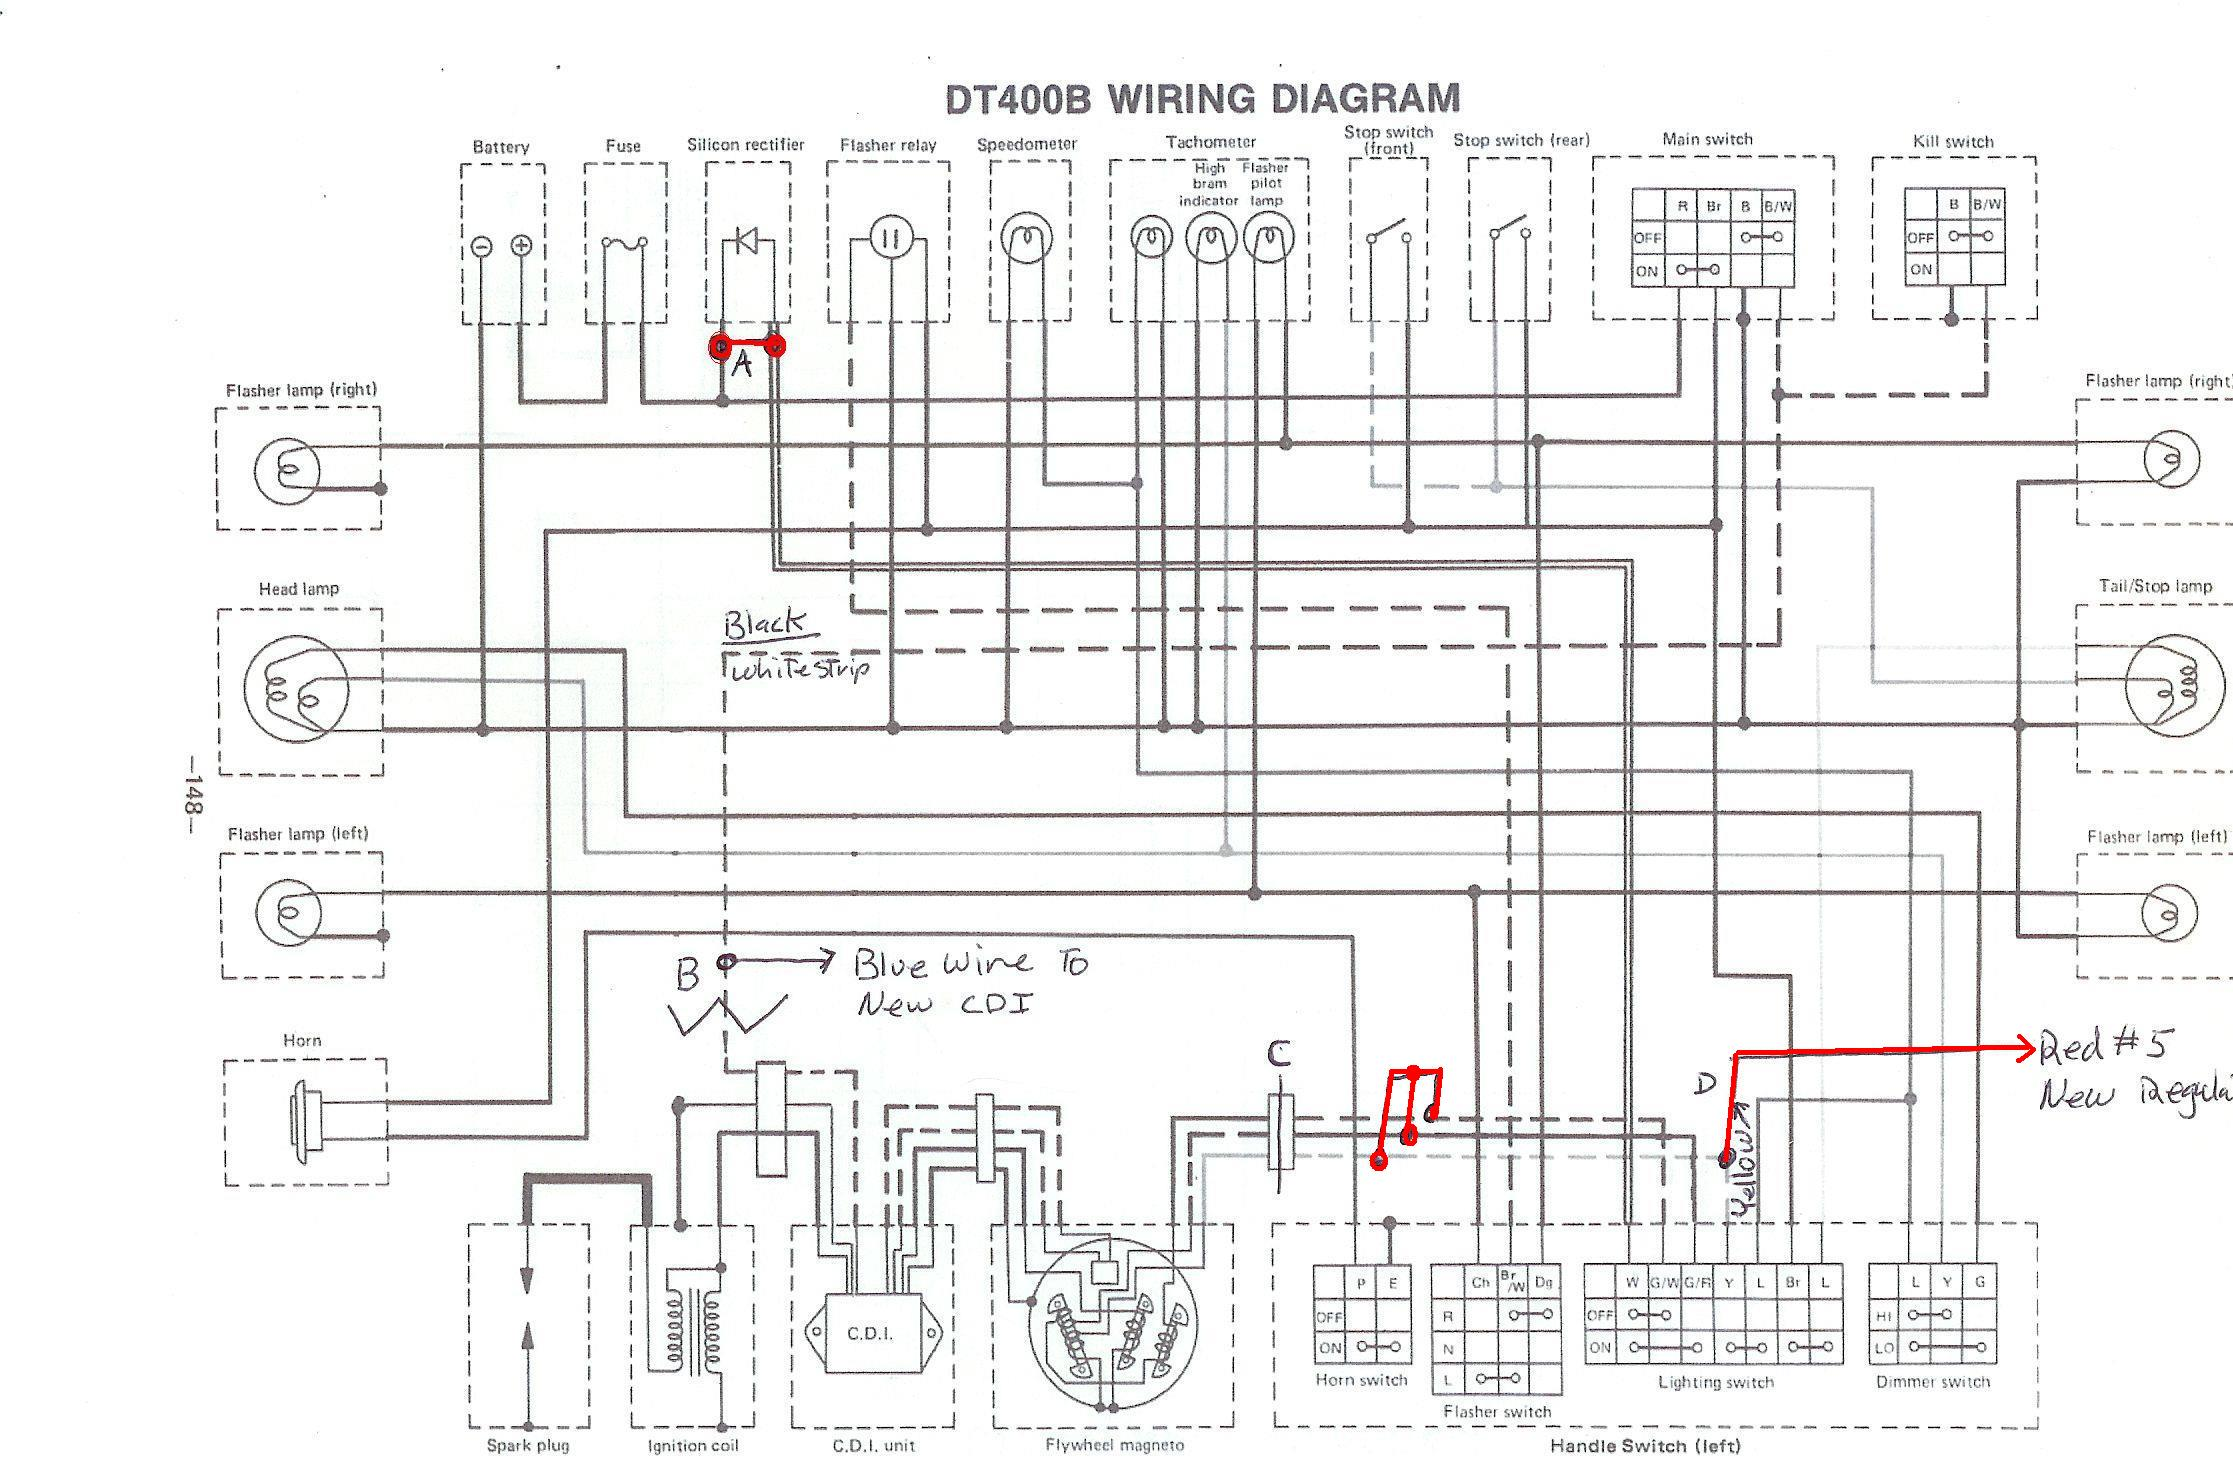 dt400wire Yamaha Dt Wiring Diagram Pdf on yamaha dt 250 wiring diagram, yamaha dt 100 wiring diagram, aprilia rs 125 wiring diagram, triumph bonneville wiring diagram, yamaha dt 125 tires, yamaha ttr 125 wiring diagram, yamaha dt 125 regulator, yamaha dt 400 wiring diagram, yamaha dt 125 specifications, yamaha dt 125 carburetor, yamaha dt 175 wiring diagram, 2006 harley-davidson dyna glide wiring diagram, yamaha dt 125 parts, positive ground wiring diagram, yamaha ybr 125 wiring diagram, suzuki sv 650 wiring diagram, yamaha xt 125 wiring diagram, honda xl 125 wiring diagram,